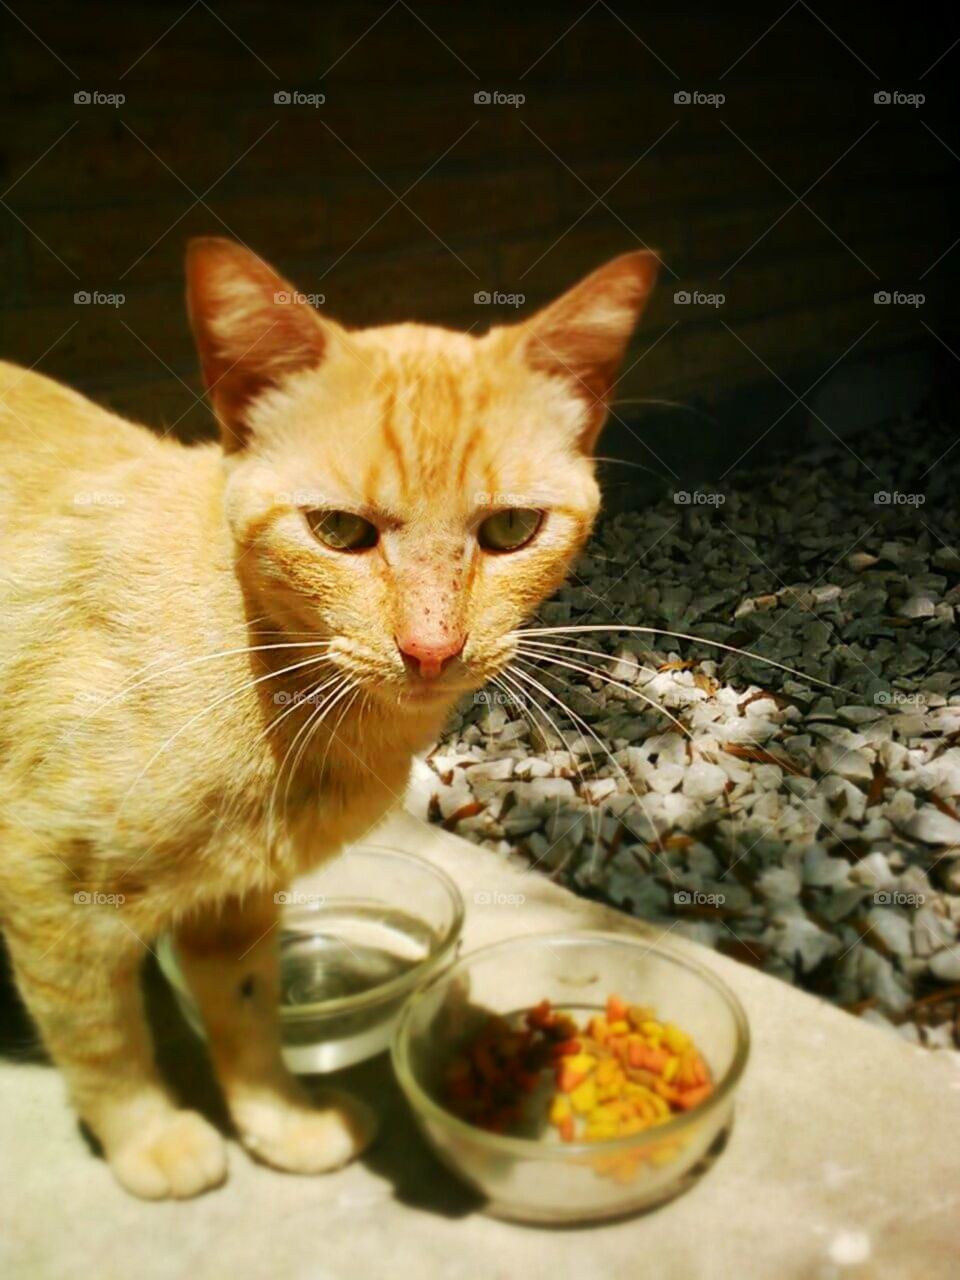 cat stray orange freckles eating catfood sunny purr